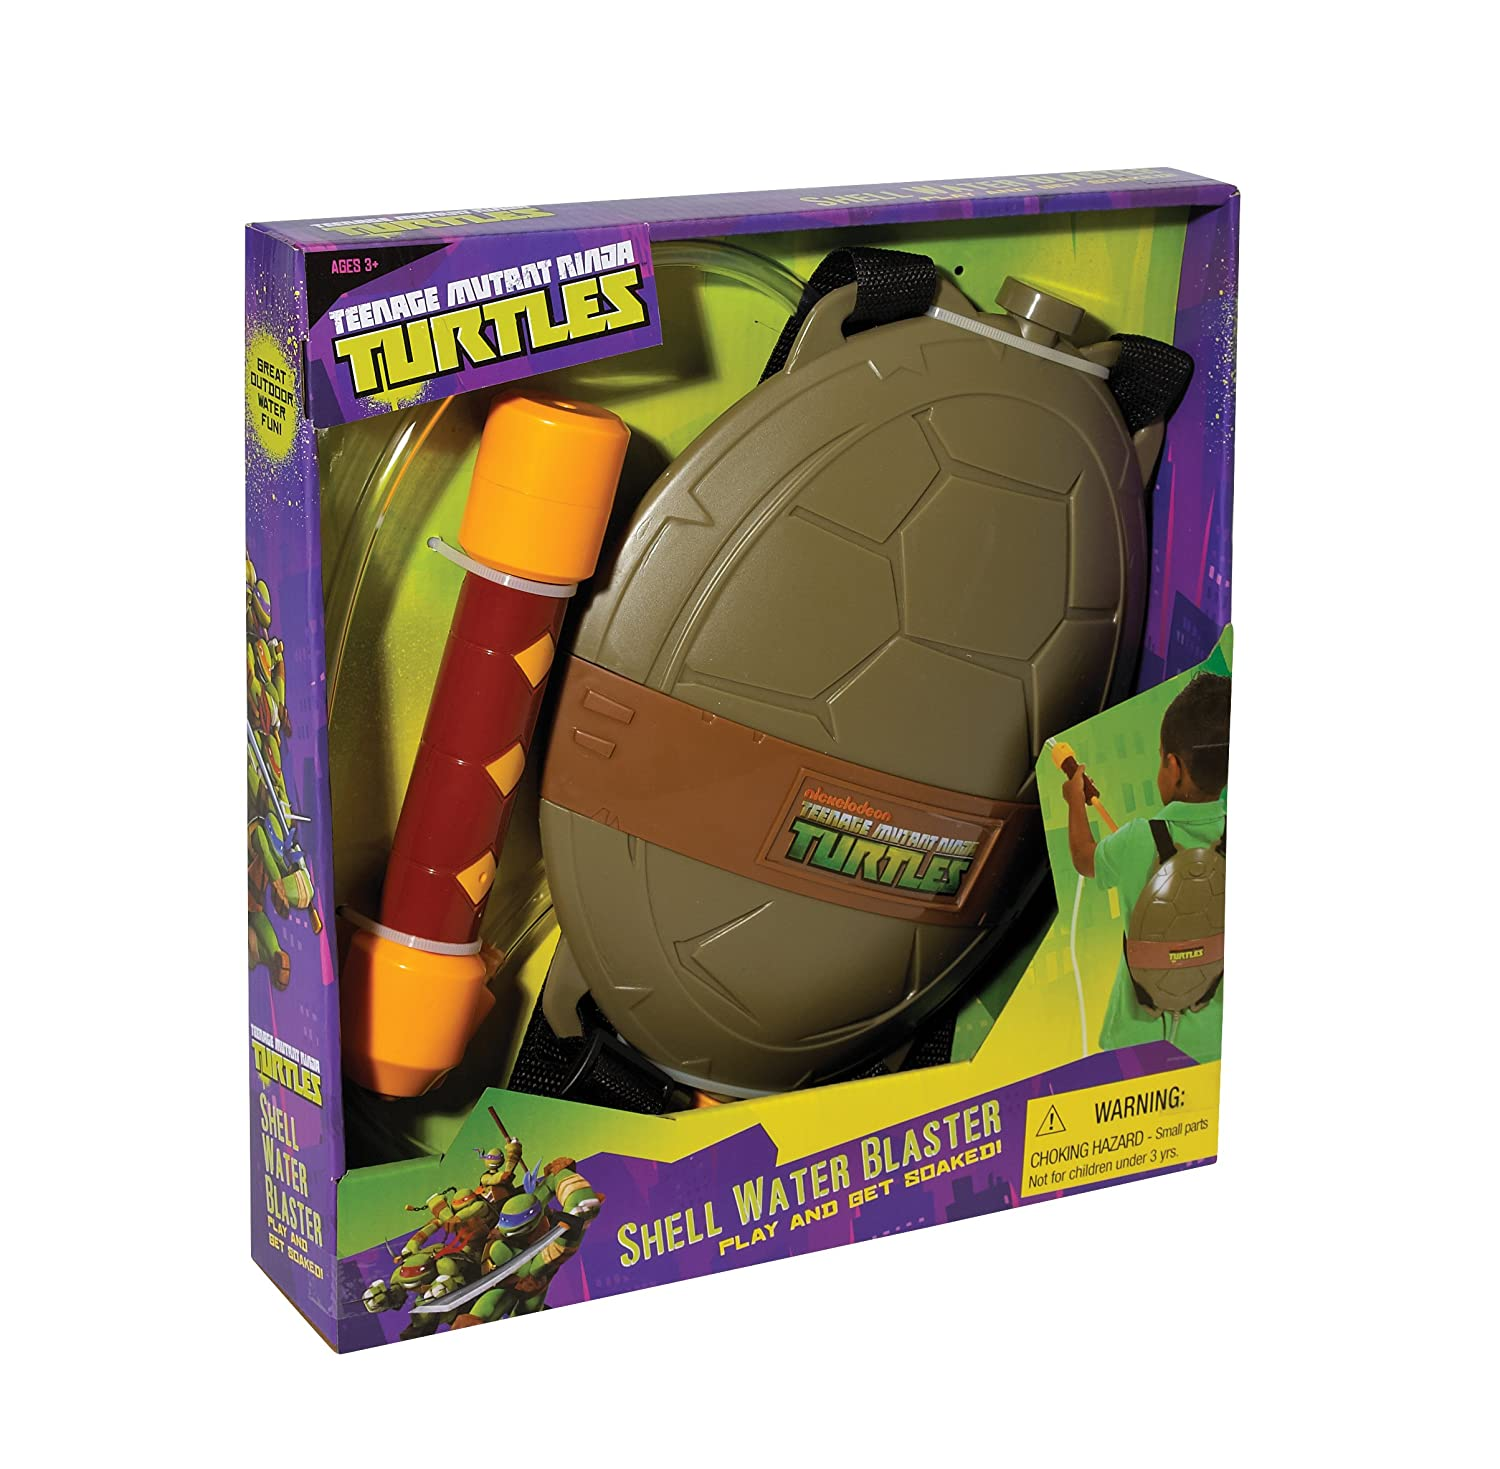 Amazon.com: Water Guns, Blasters & Soakers: Toys & Games: Squirt ...